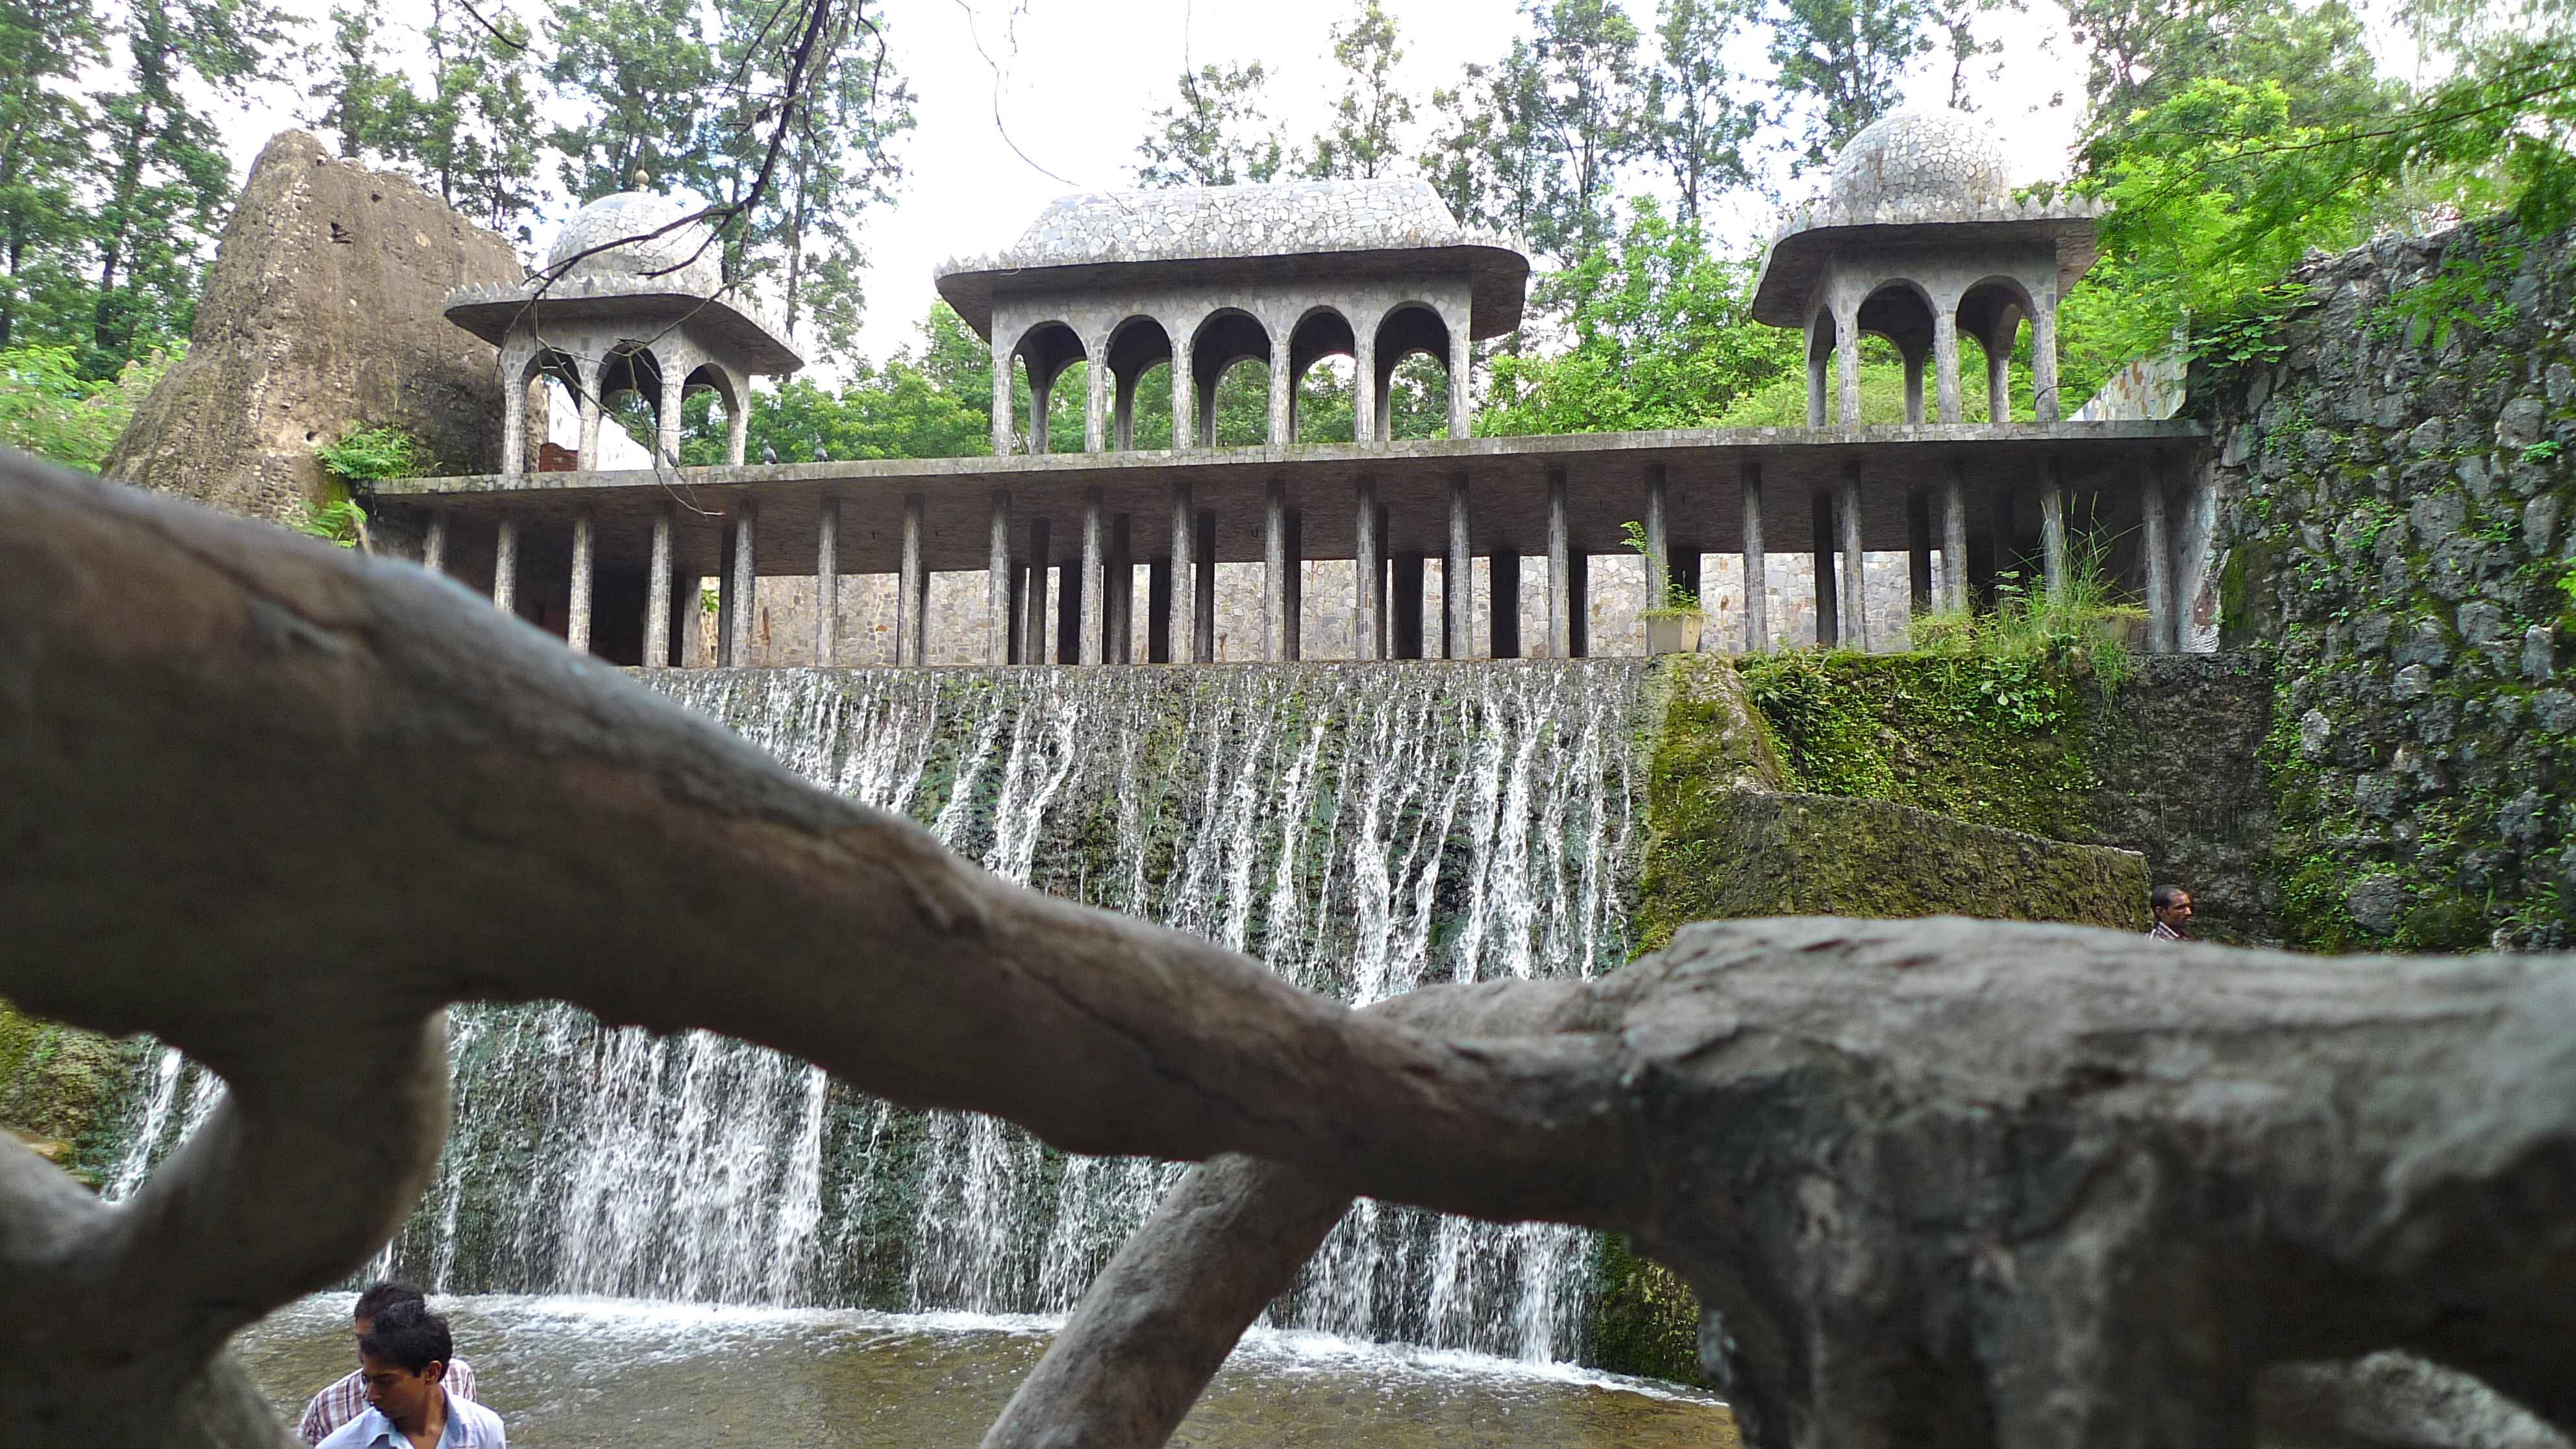 essay on rock garden chandigarh Apart from that the beautiful sukhna lake, the exquisite rose garden - zakir gulab bag, the fascinating rock garden, the sacred temple of the goddess chandi are truly worth a travel to chandigarh people of chandigarh are secular in nature.